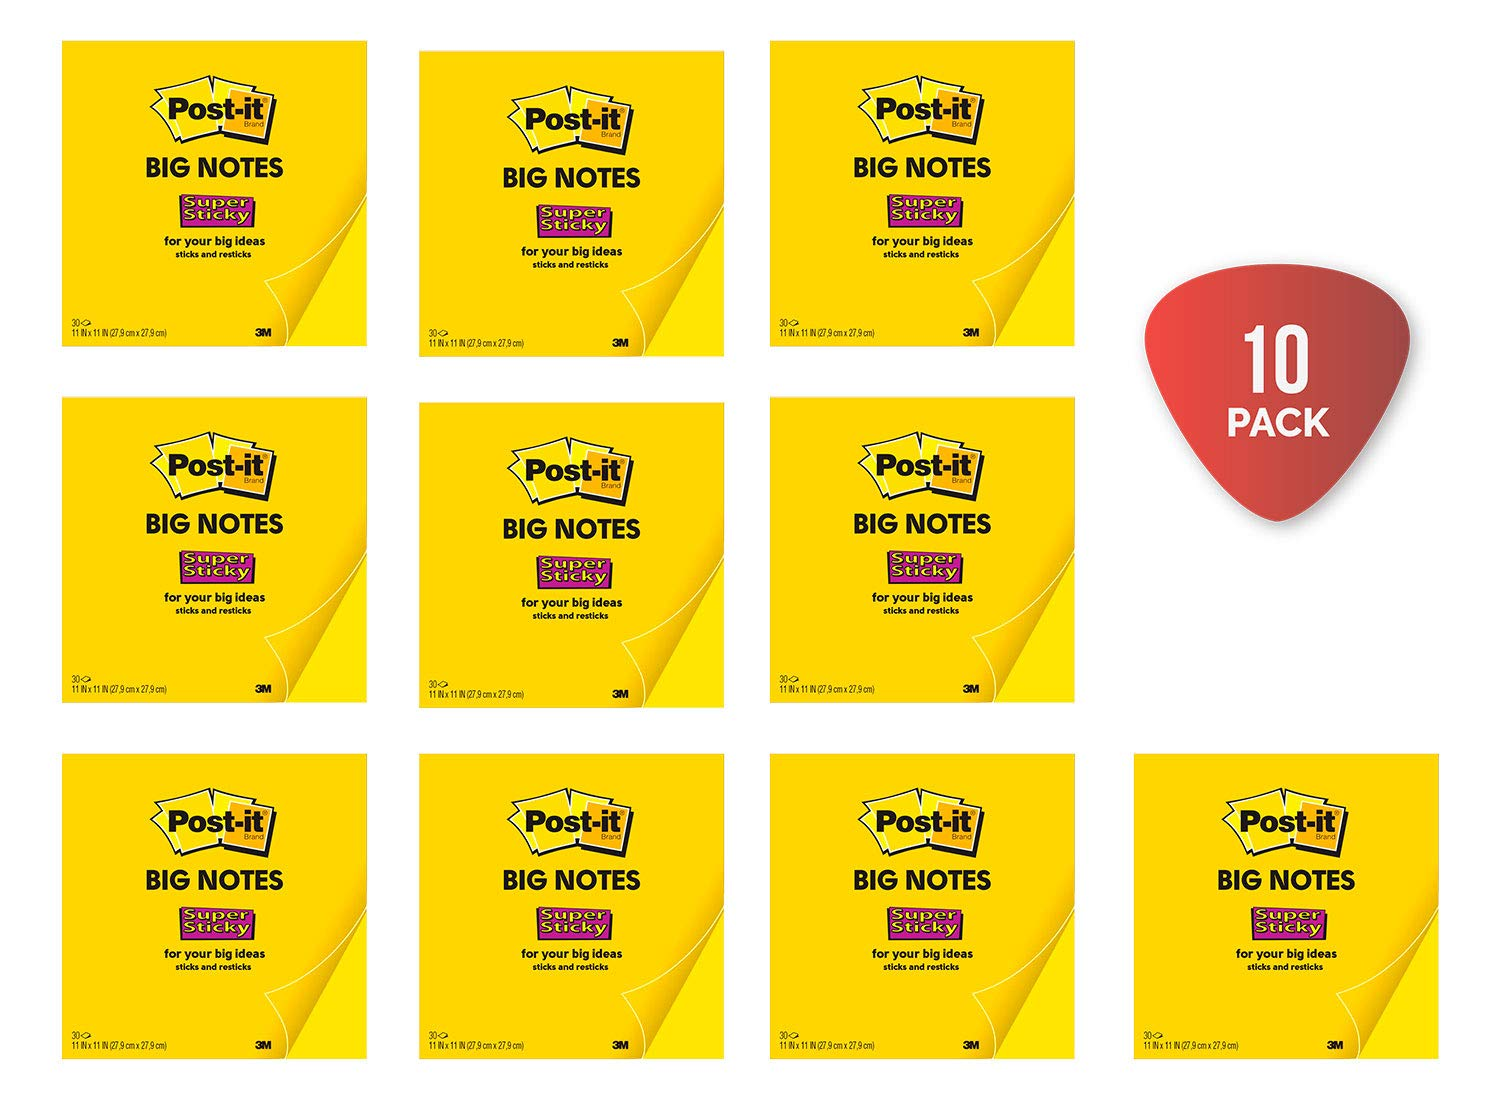 Post-it Super Sticky Big Notes, 11 x 11 Inches, 30 Sheets/Pad (BN11), Large Bright Yellow Paper, Super Sticking Power, Sticks and Resticks (Pack 10) by Post-it